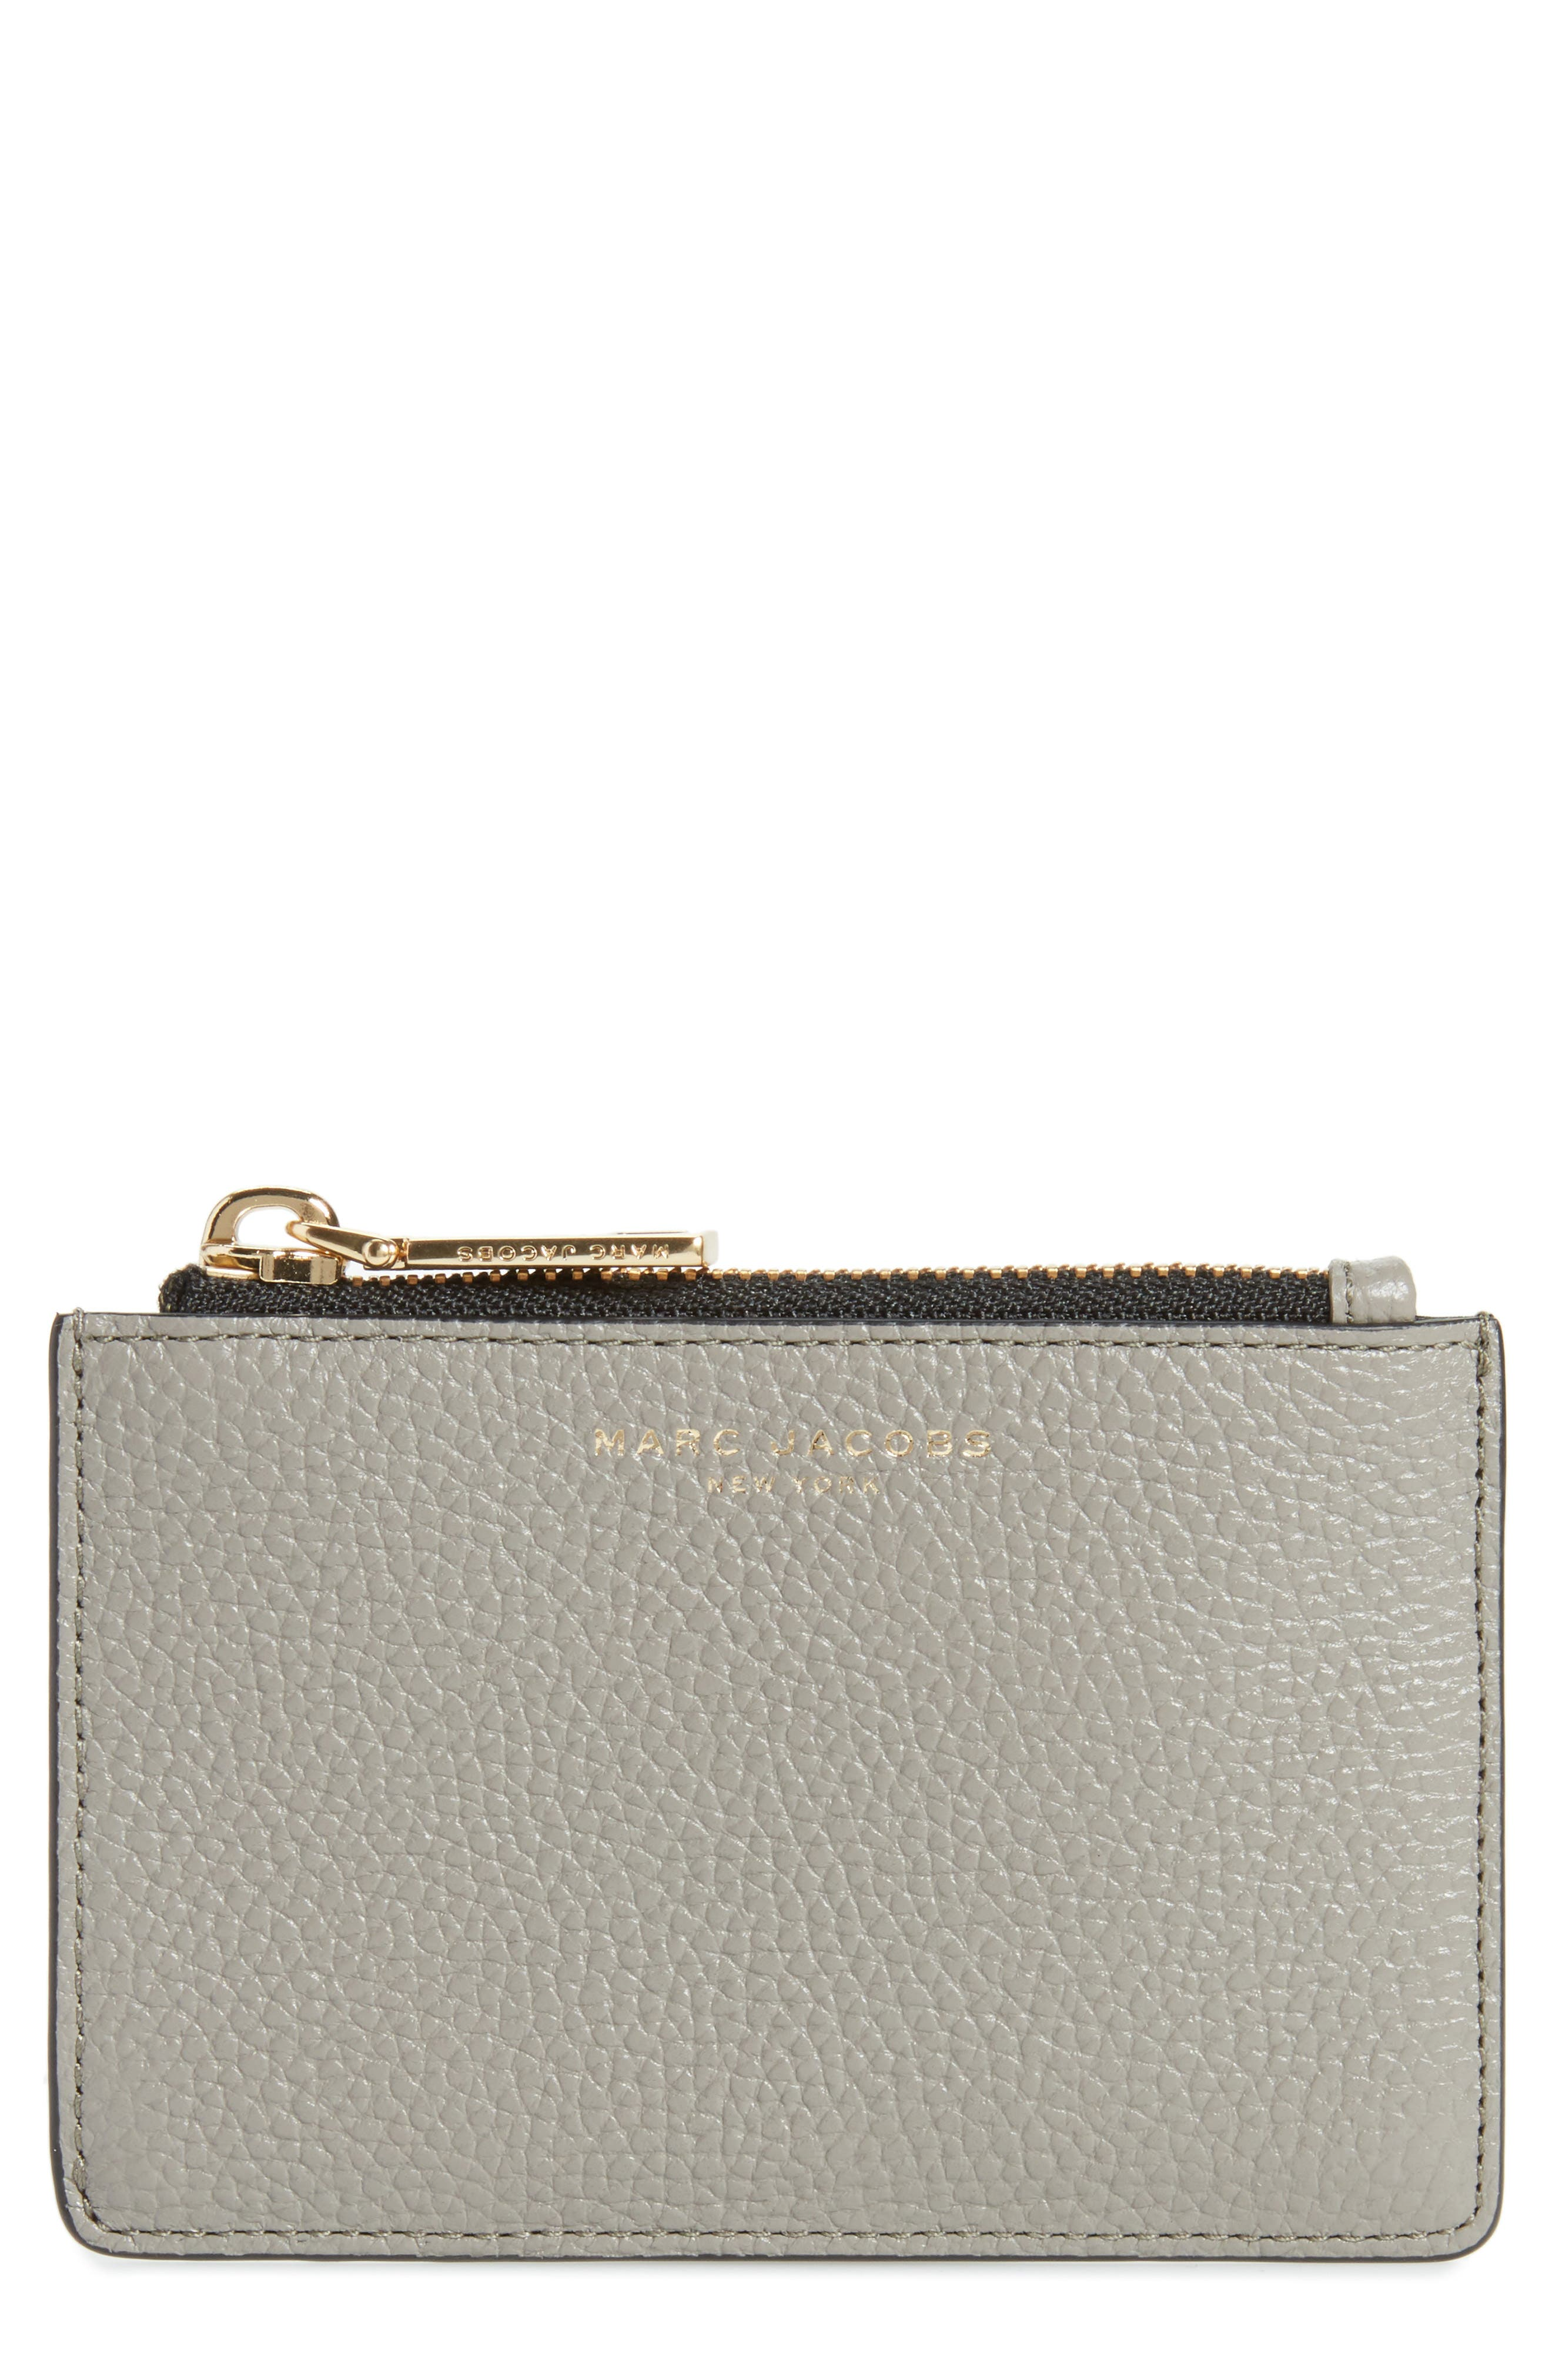 Gotham Leather Wallet,                         Main,                         color, Stone Grey